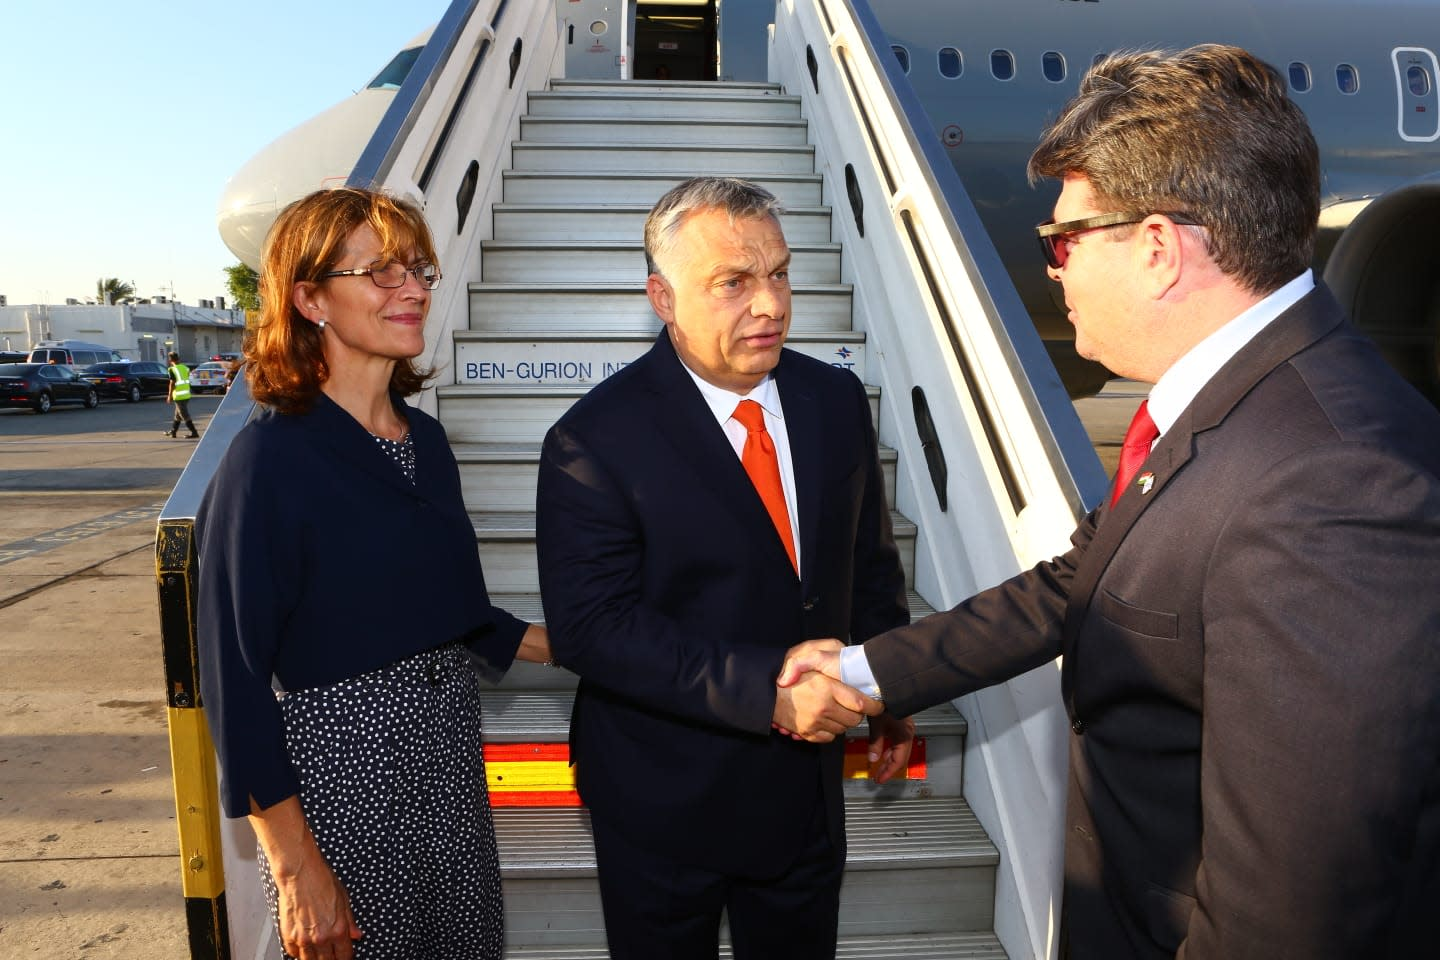 Hungarian Prime Minister Viktor Orban is greeted on arrival at Ben-Gurion Airport, July 18, 2018 (Ministry of Foreign Affairs)